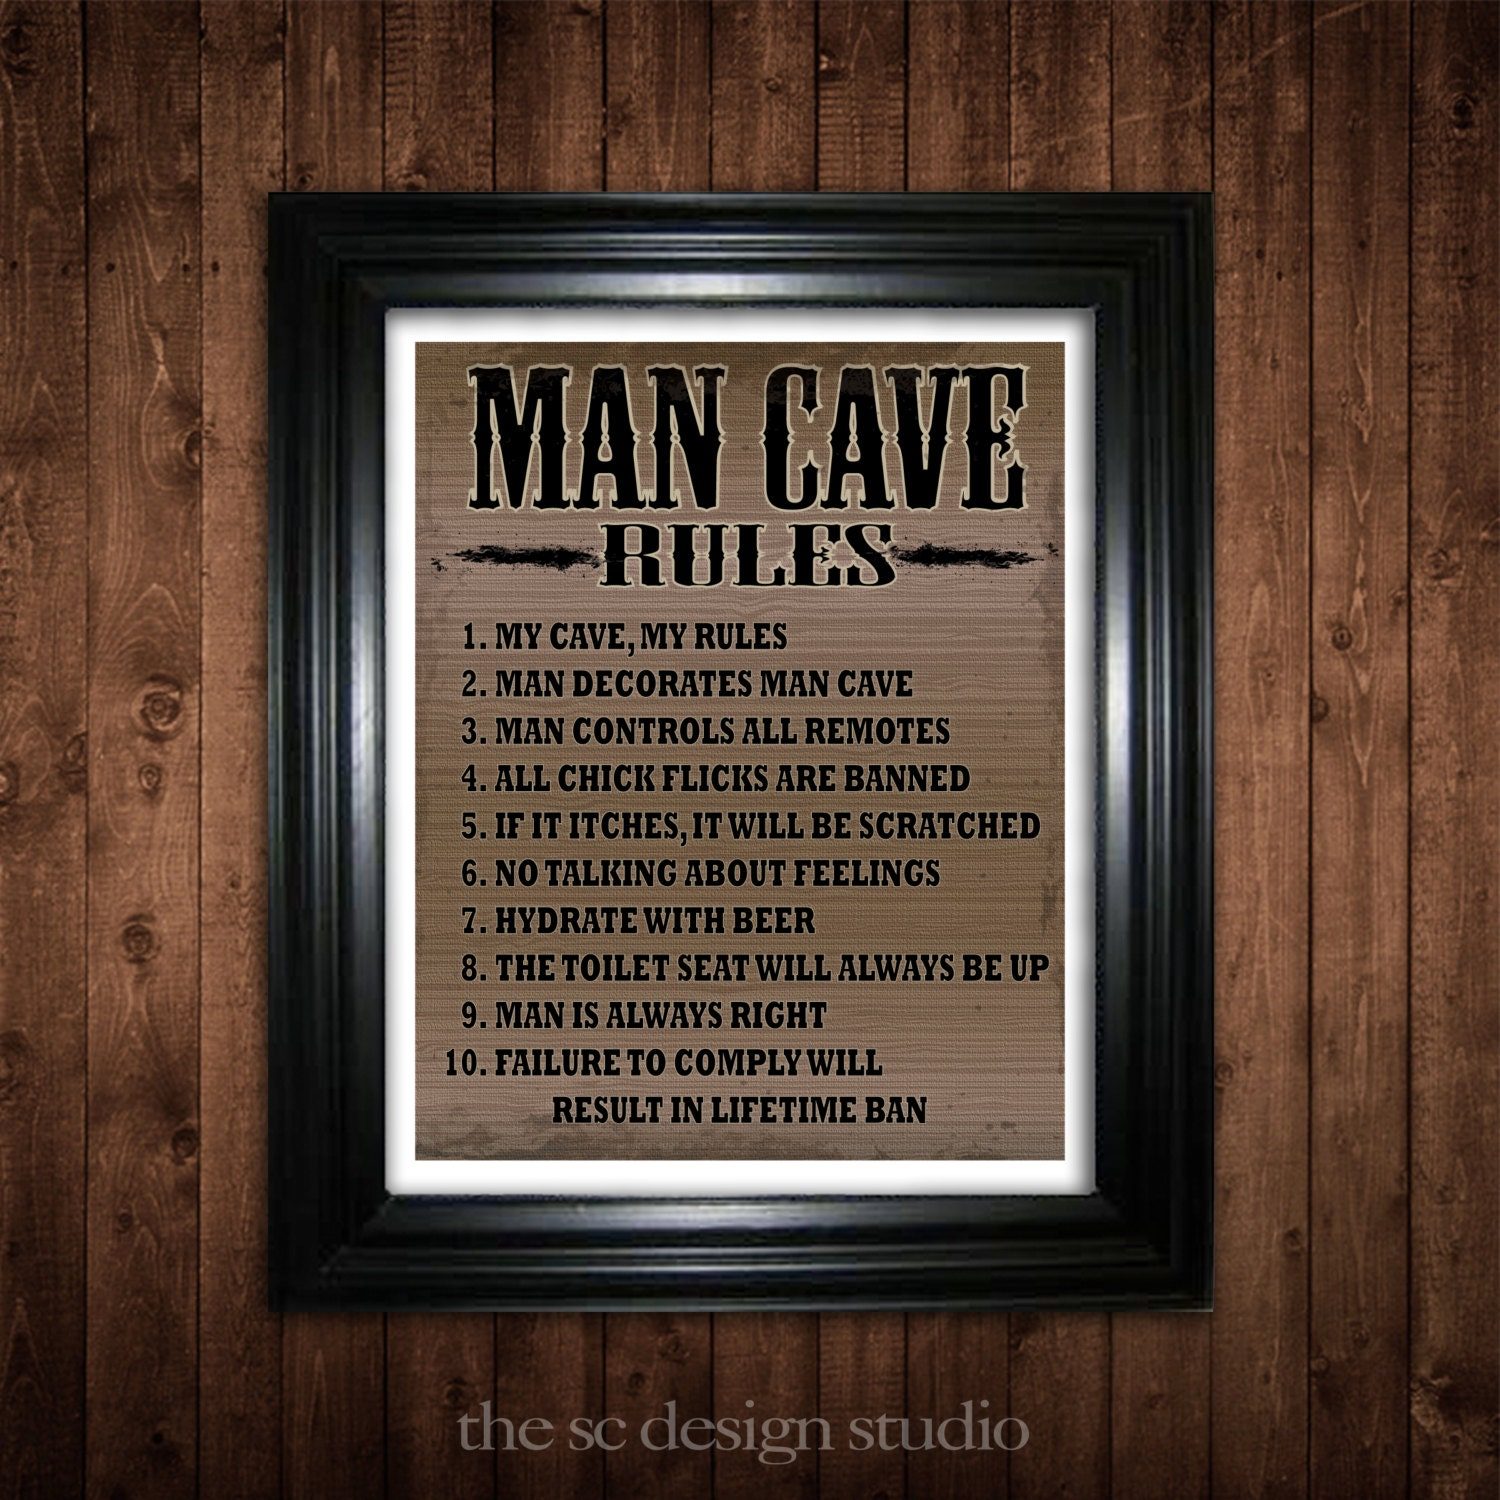 Man Cave Gifts For Dad : Man cave rules gift for him gifts dad fathers day